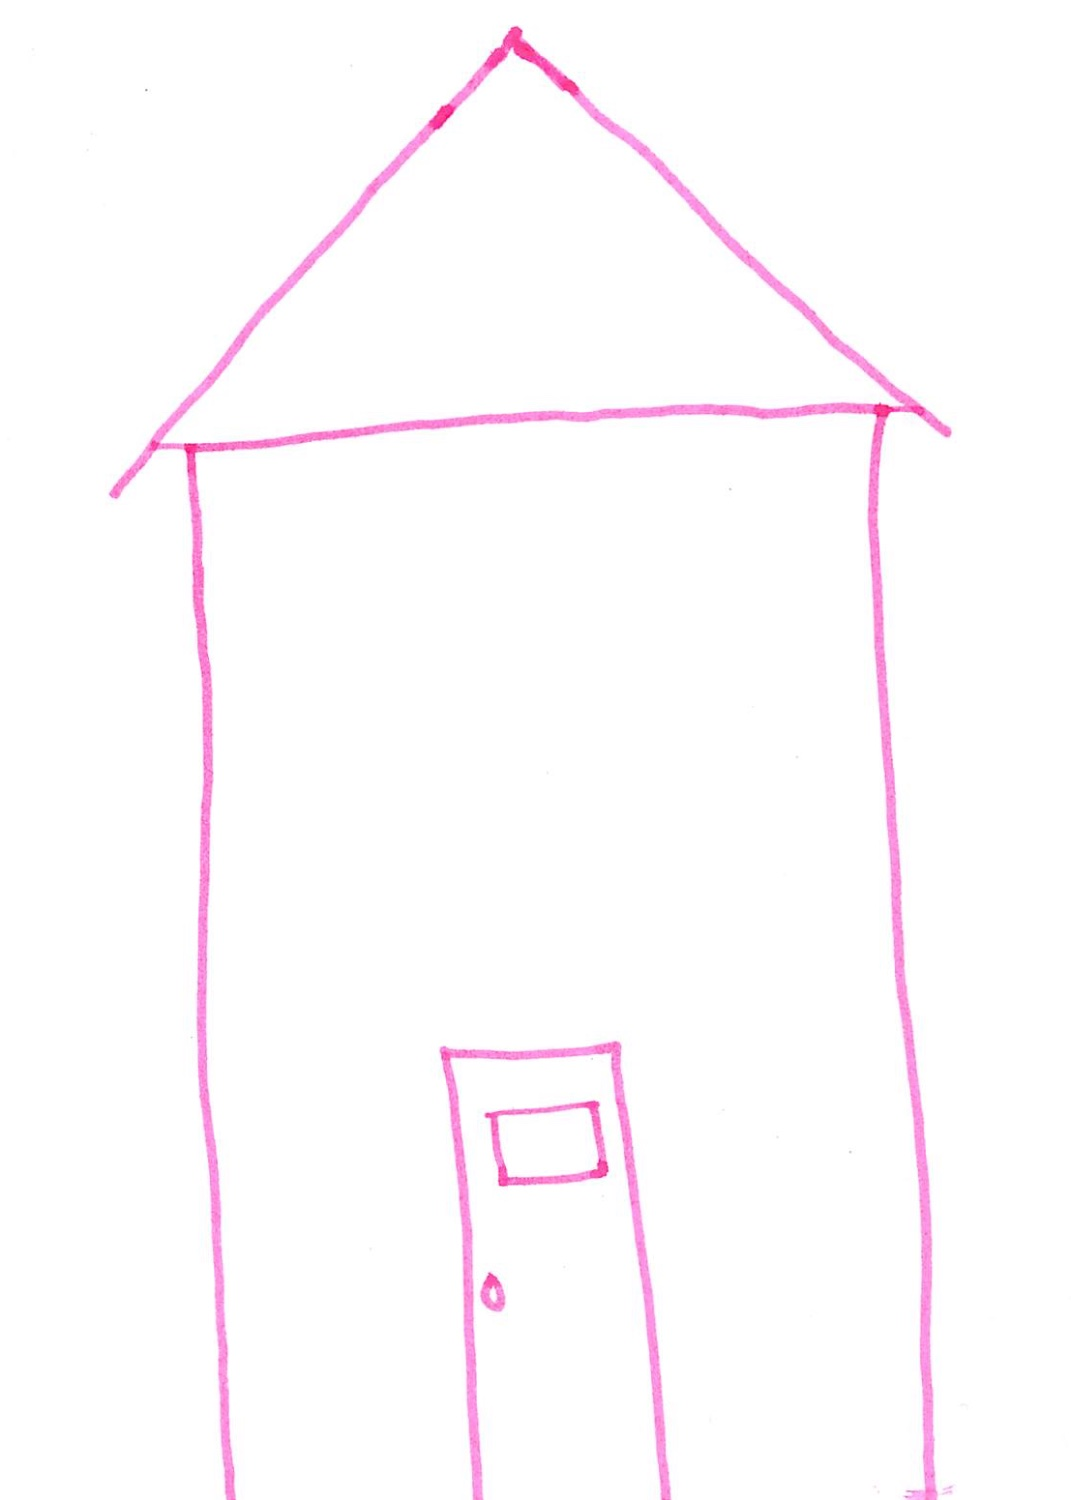 I have drawn a house with a door; when the door is closed there is privacy. However, others can be let in if they ring the door bell. Age 24.